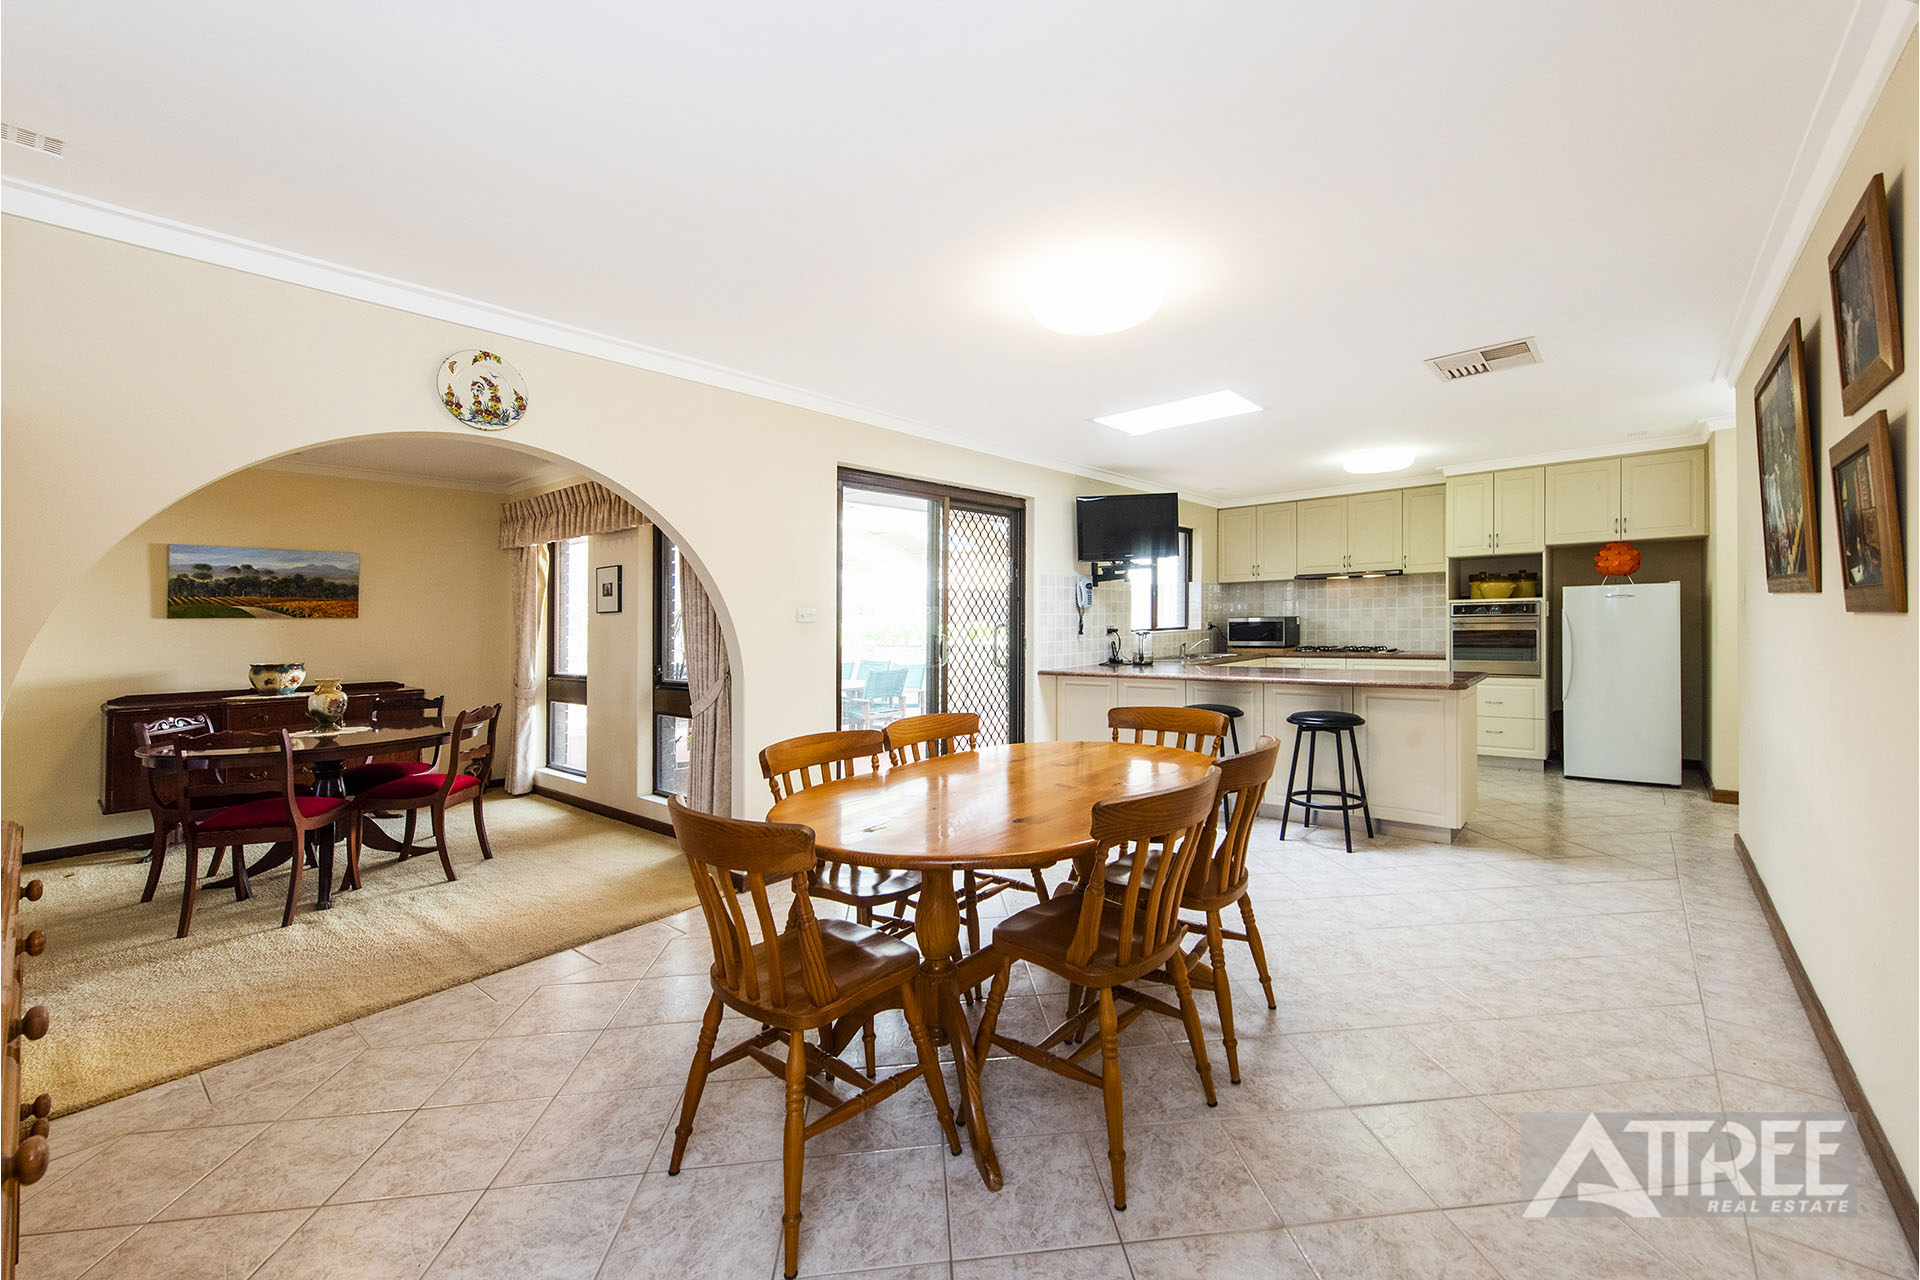 Property for sale in SPEARWOOD, 17 Galian Way : Attree Real Estate